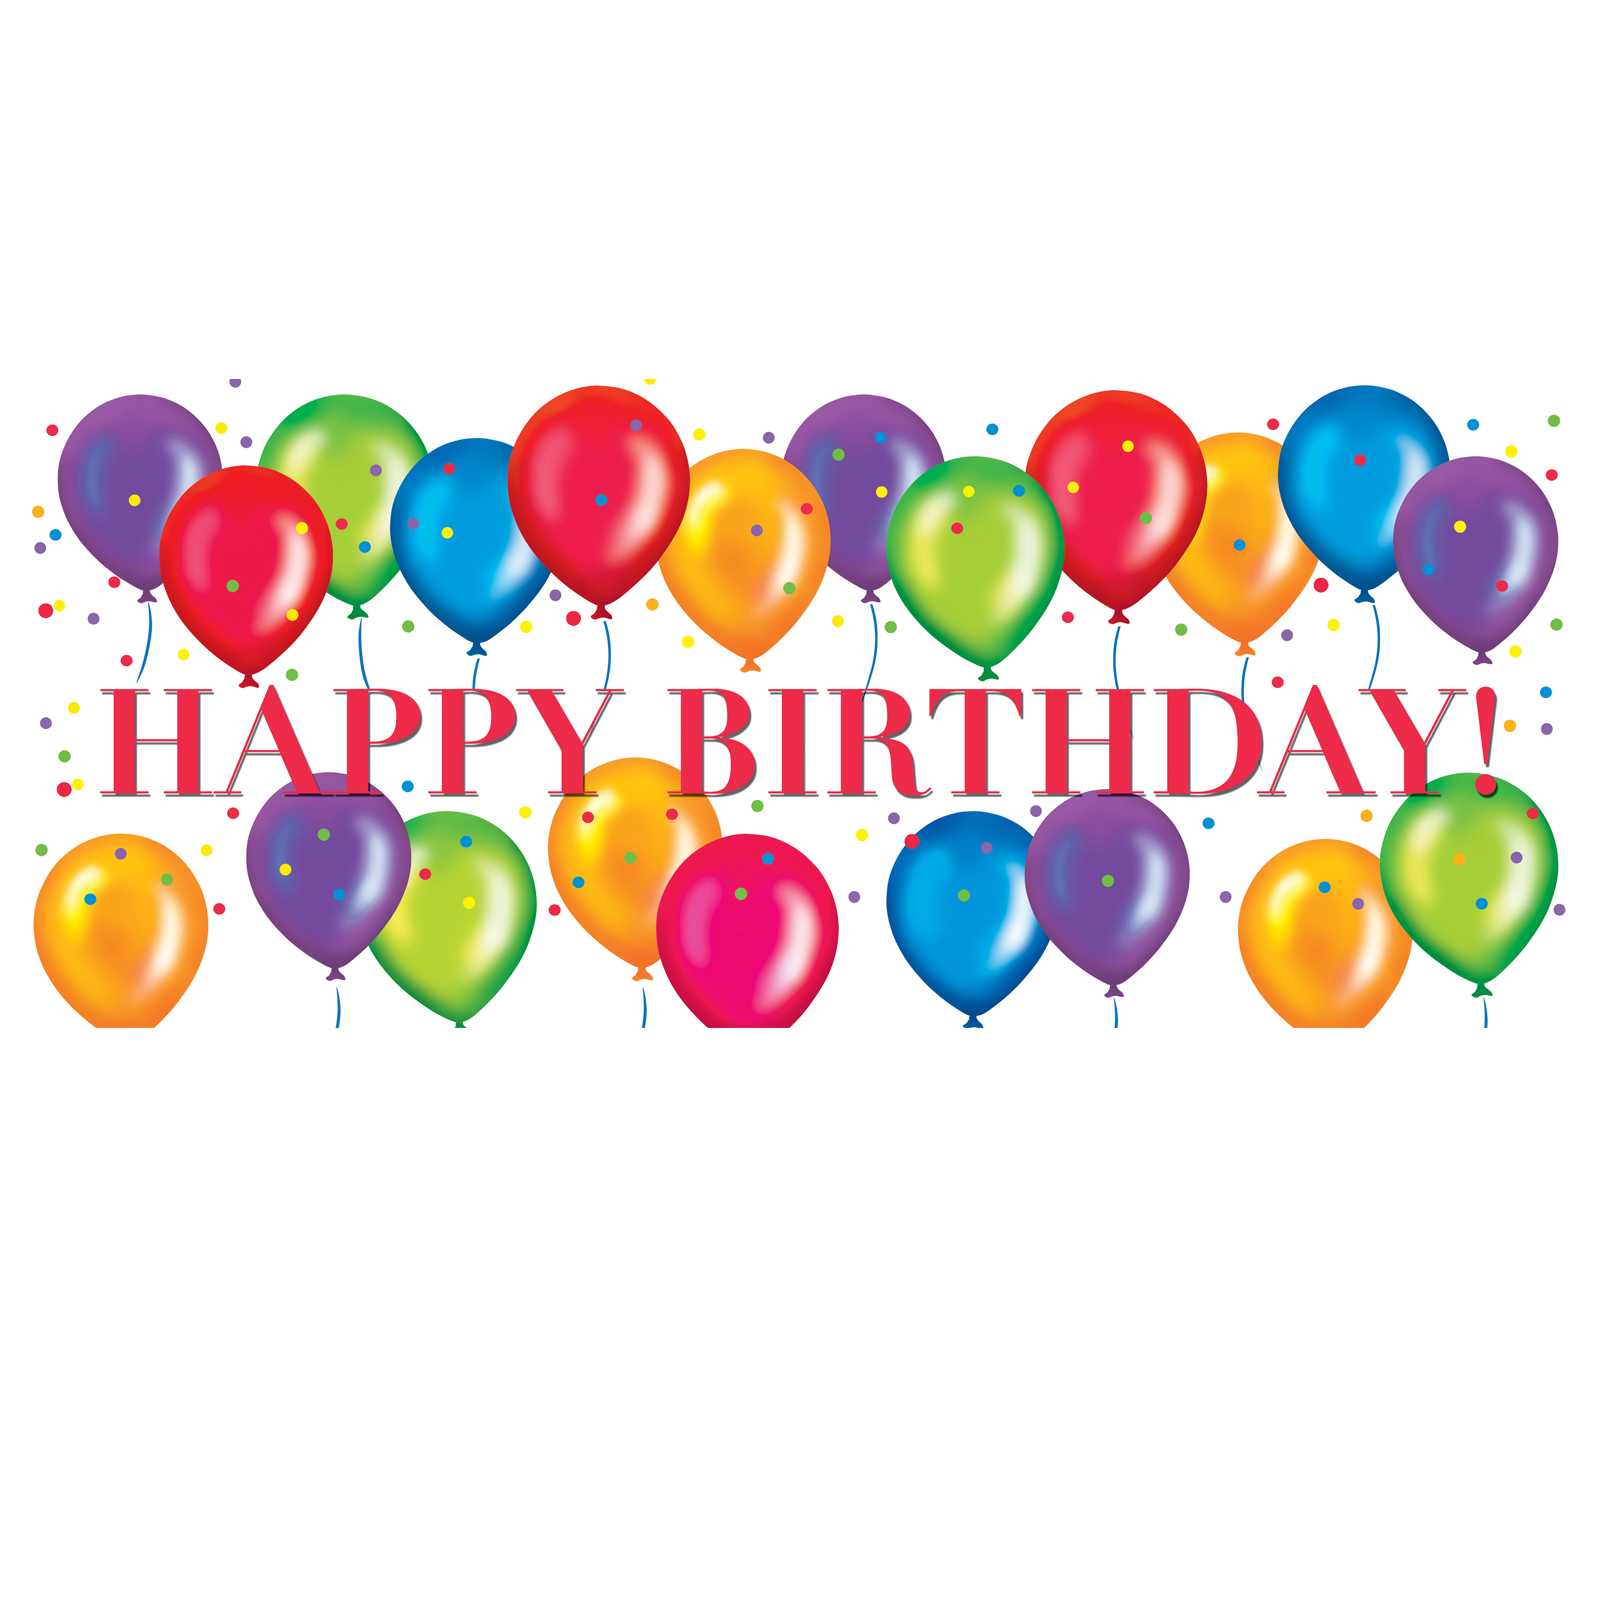 Happy Birthday Animation Clipart | Free download best Happy Birthday ... graphic royalty free library